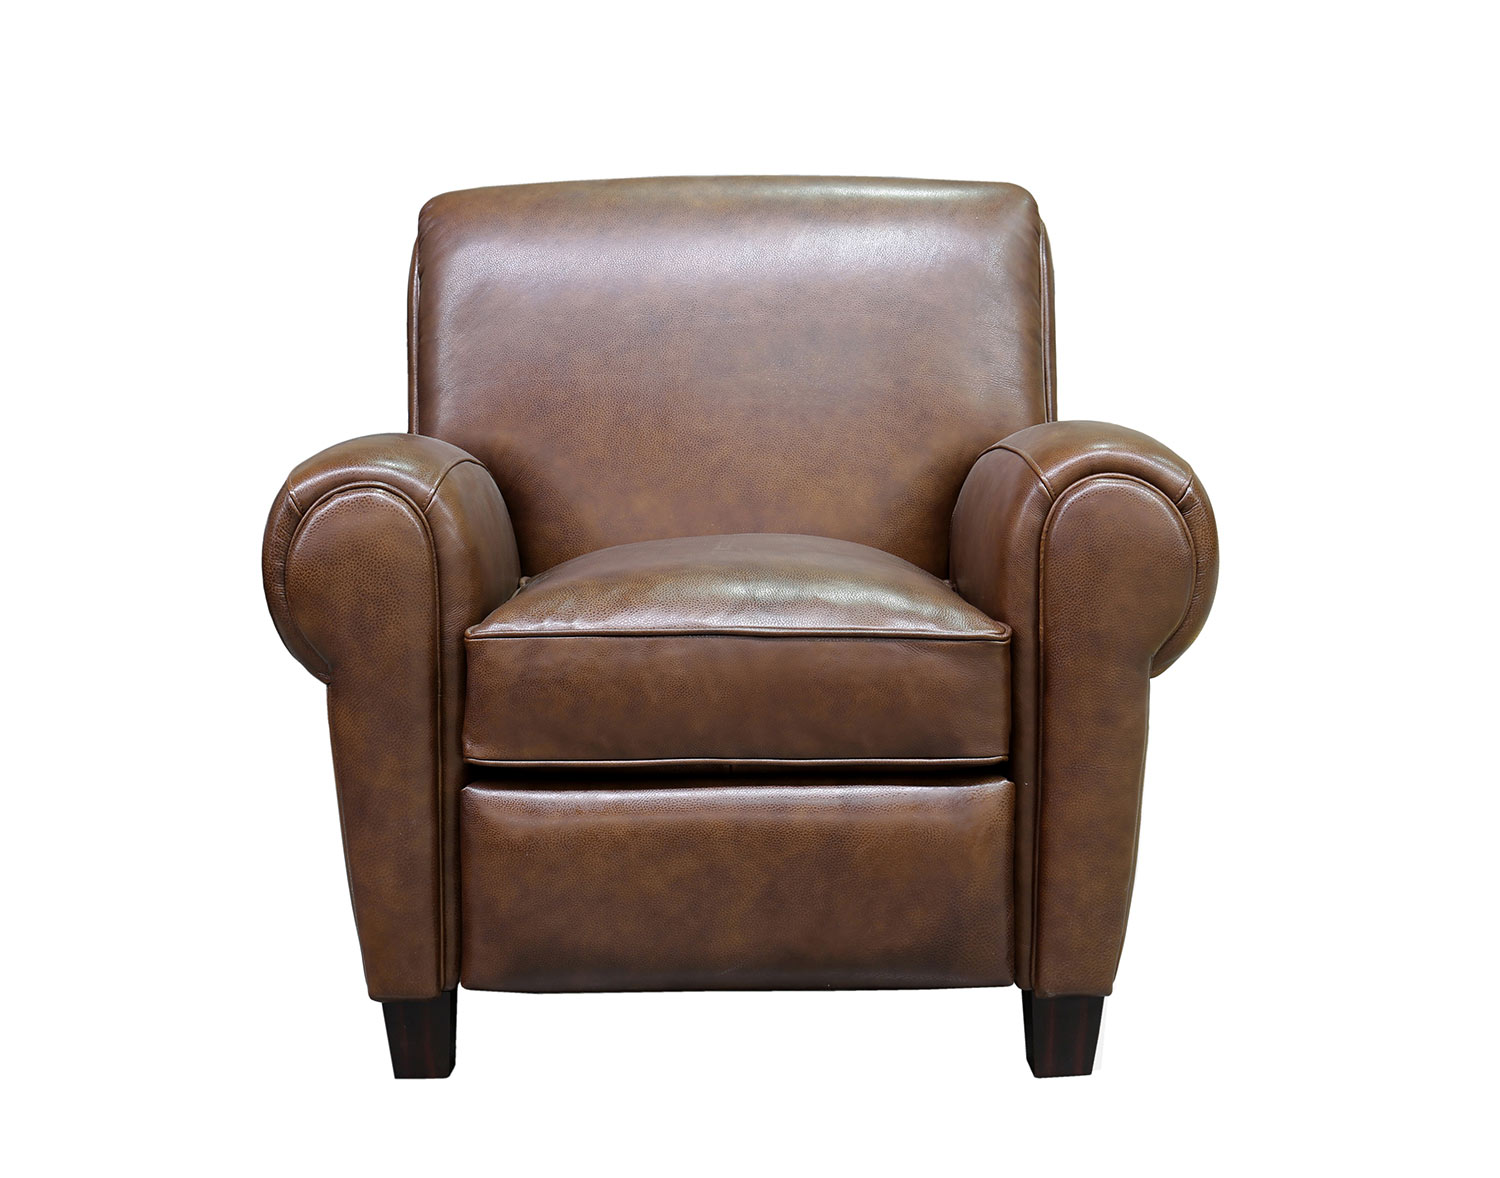 Barcalounger Edwin Recliner Chair - Wenlock Double Chocolate/All Leather